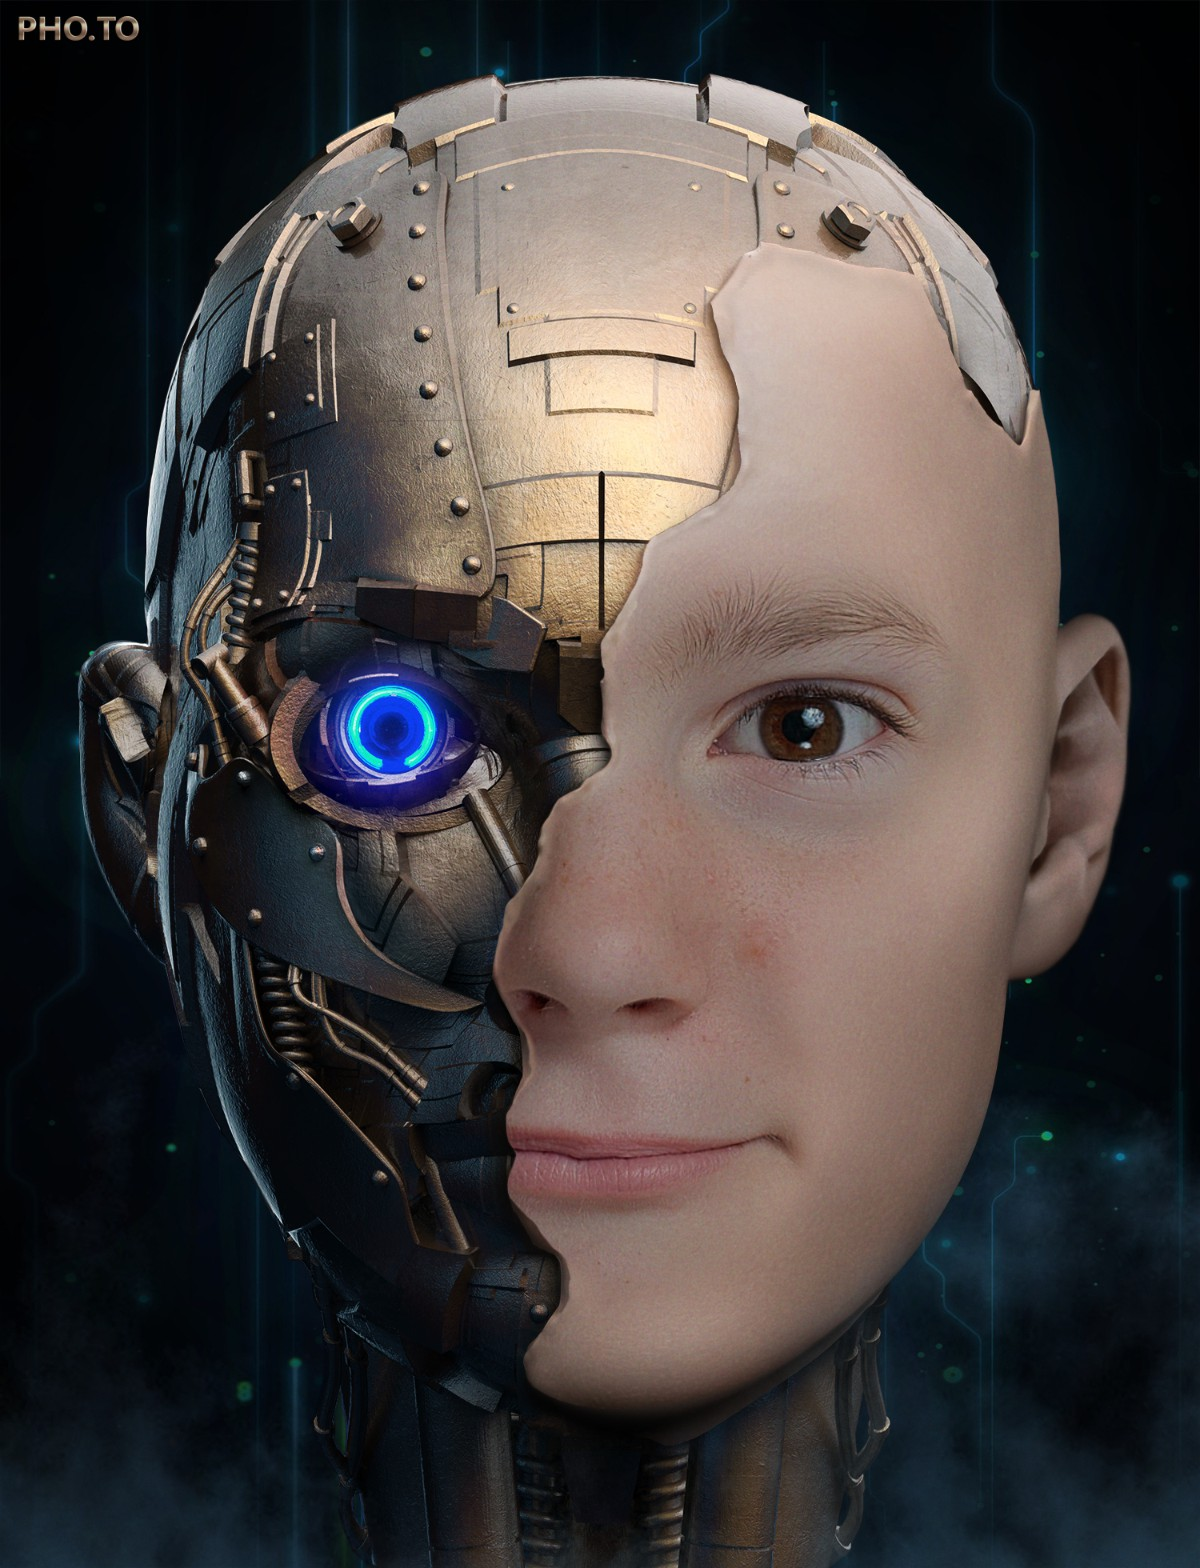 A boy is turned into a robot with face in hole photo effect.